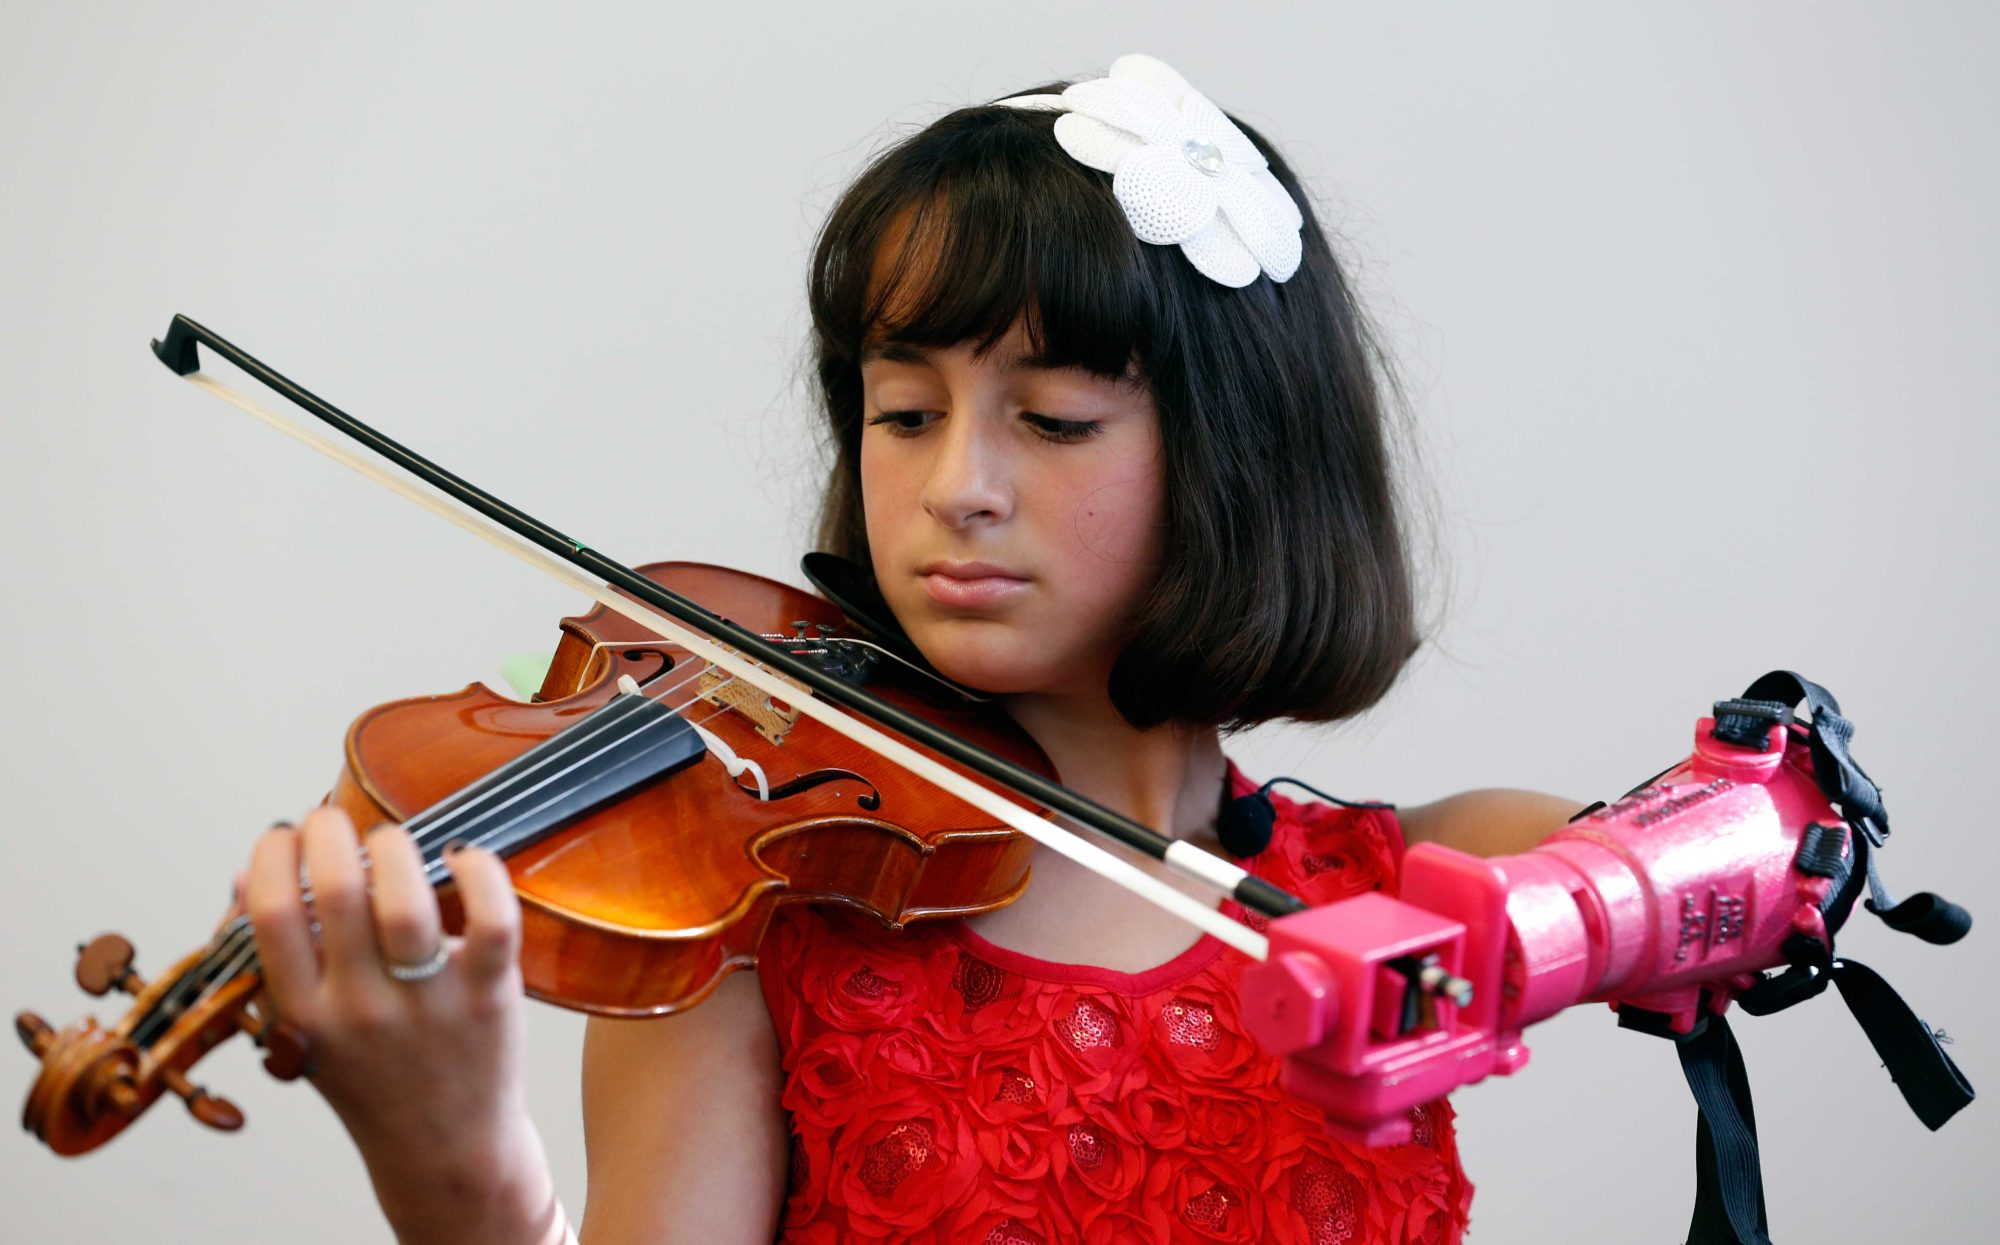 Girl, 10, Is Able to Play the Violin After a Group of Students Design a New (Hot Pink!) Prosthetic Arm